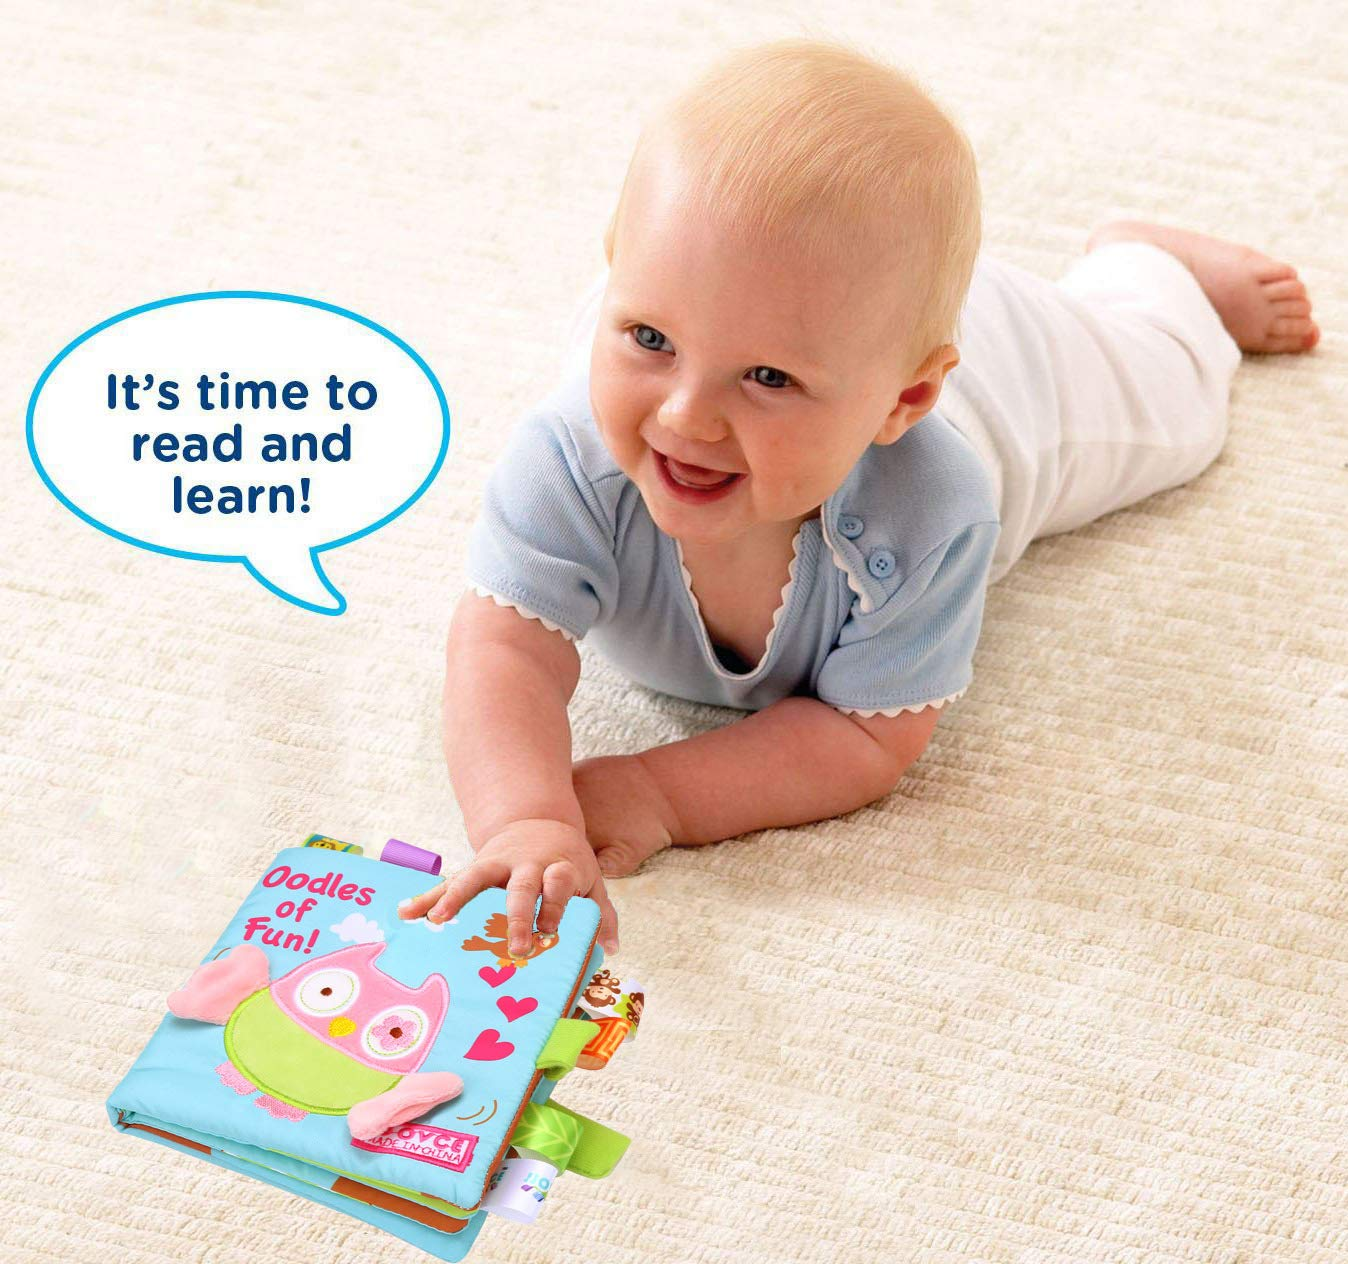 2020 Loveys Shower Gift for Babies Developmental Toy All Ages Machine Washable Updated Infant Book for Baby Boys Girls Touch and Feel Soft Cloth Owl Crinkle Sensory Preschool Toddlers Toys